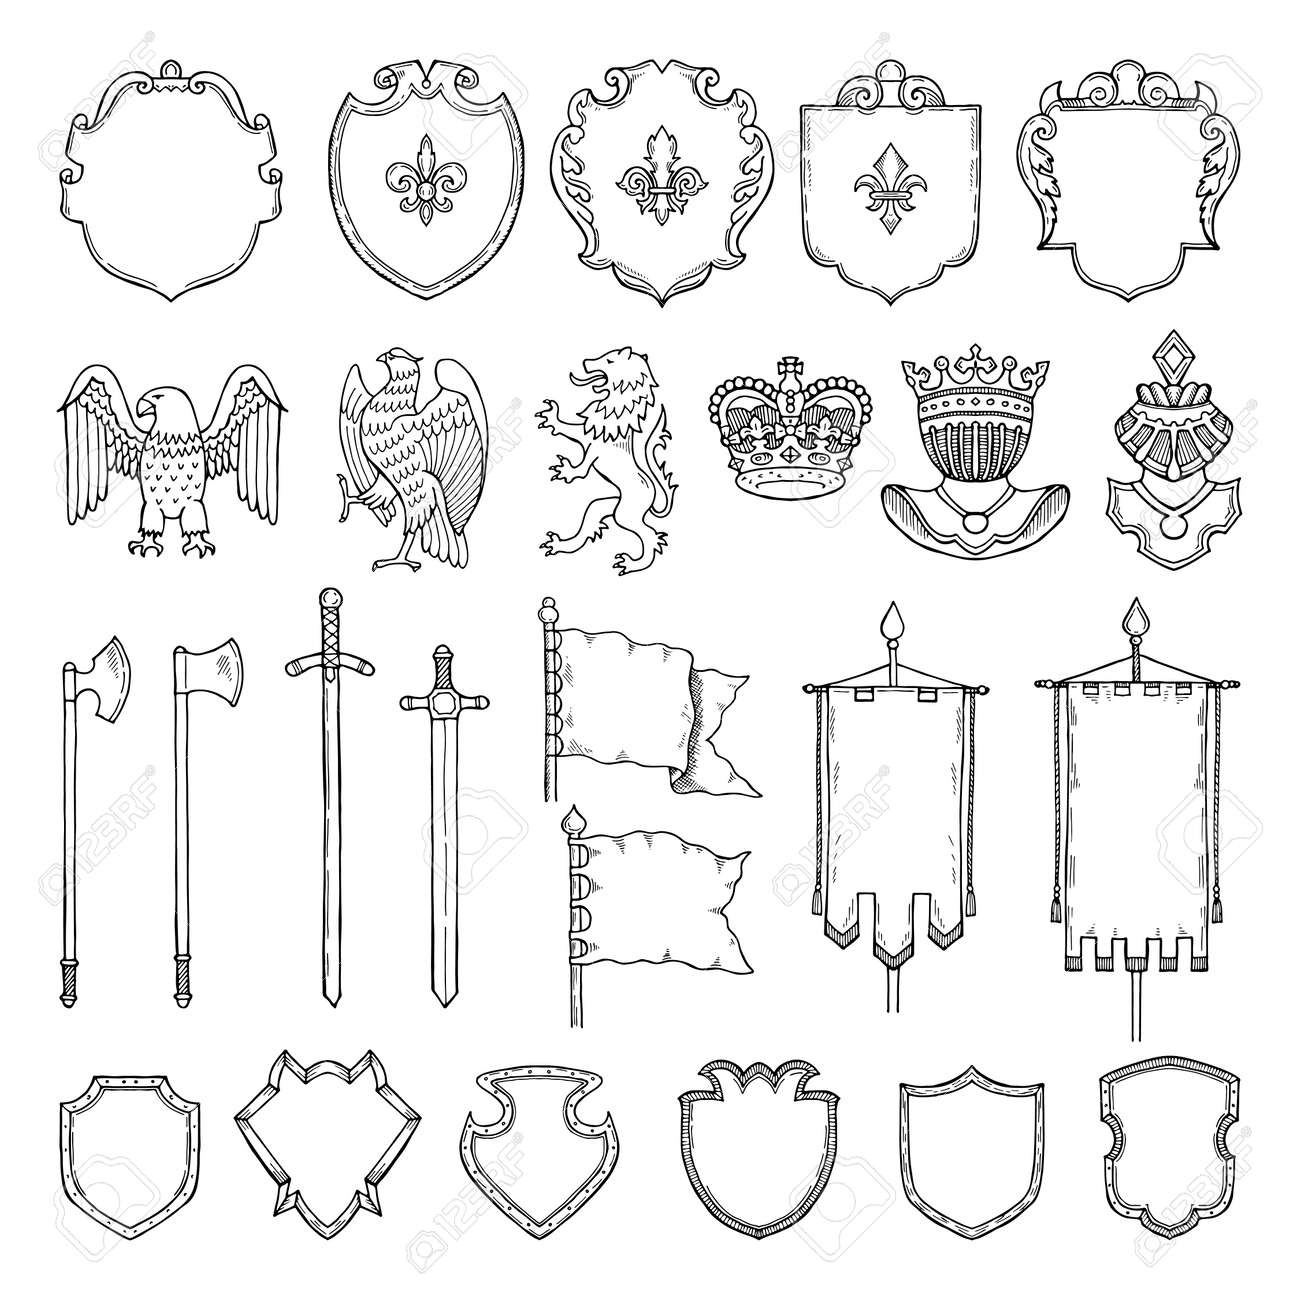 Medieval heraldic symbols isolate on white. Vector hand drawn illustrations. Medieval emblem royal crown and ancient sword - 166036680